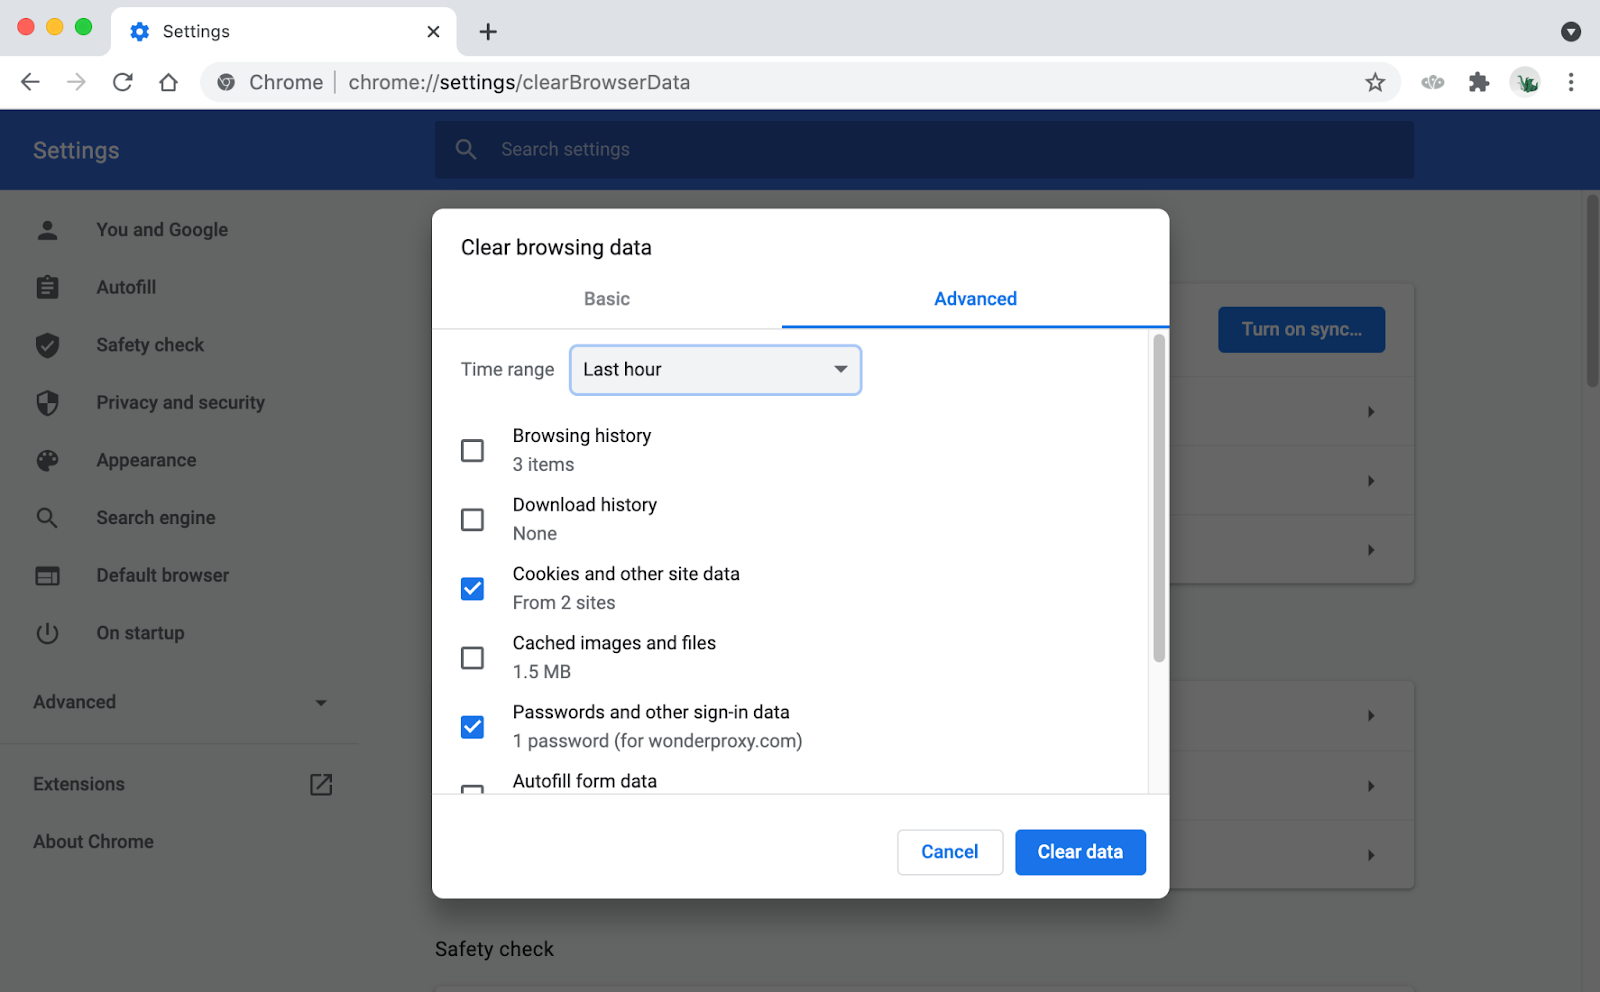 Chrome's Clear Browsing Data modal with Cookies and Passwords checkboxes selected